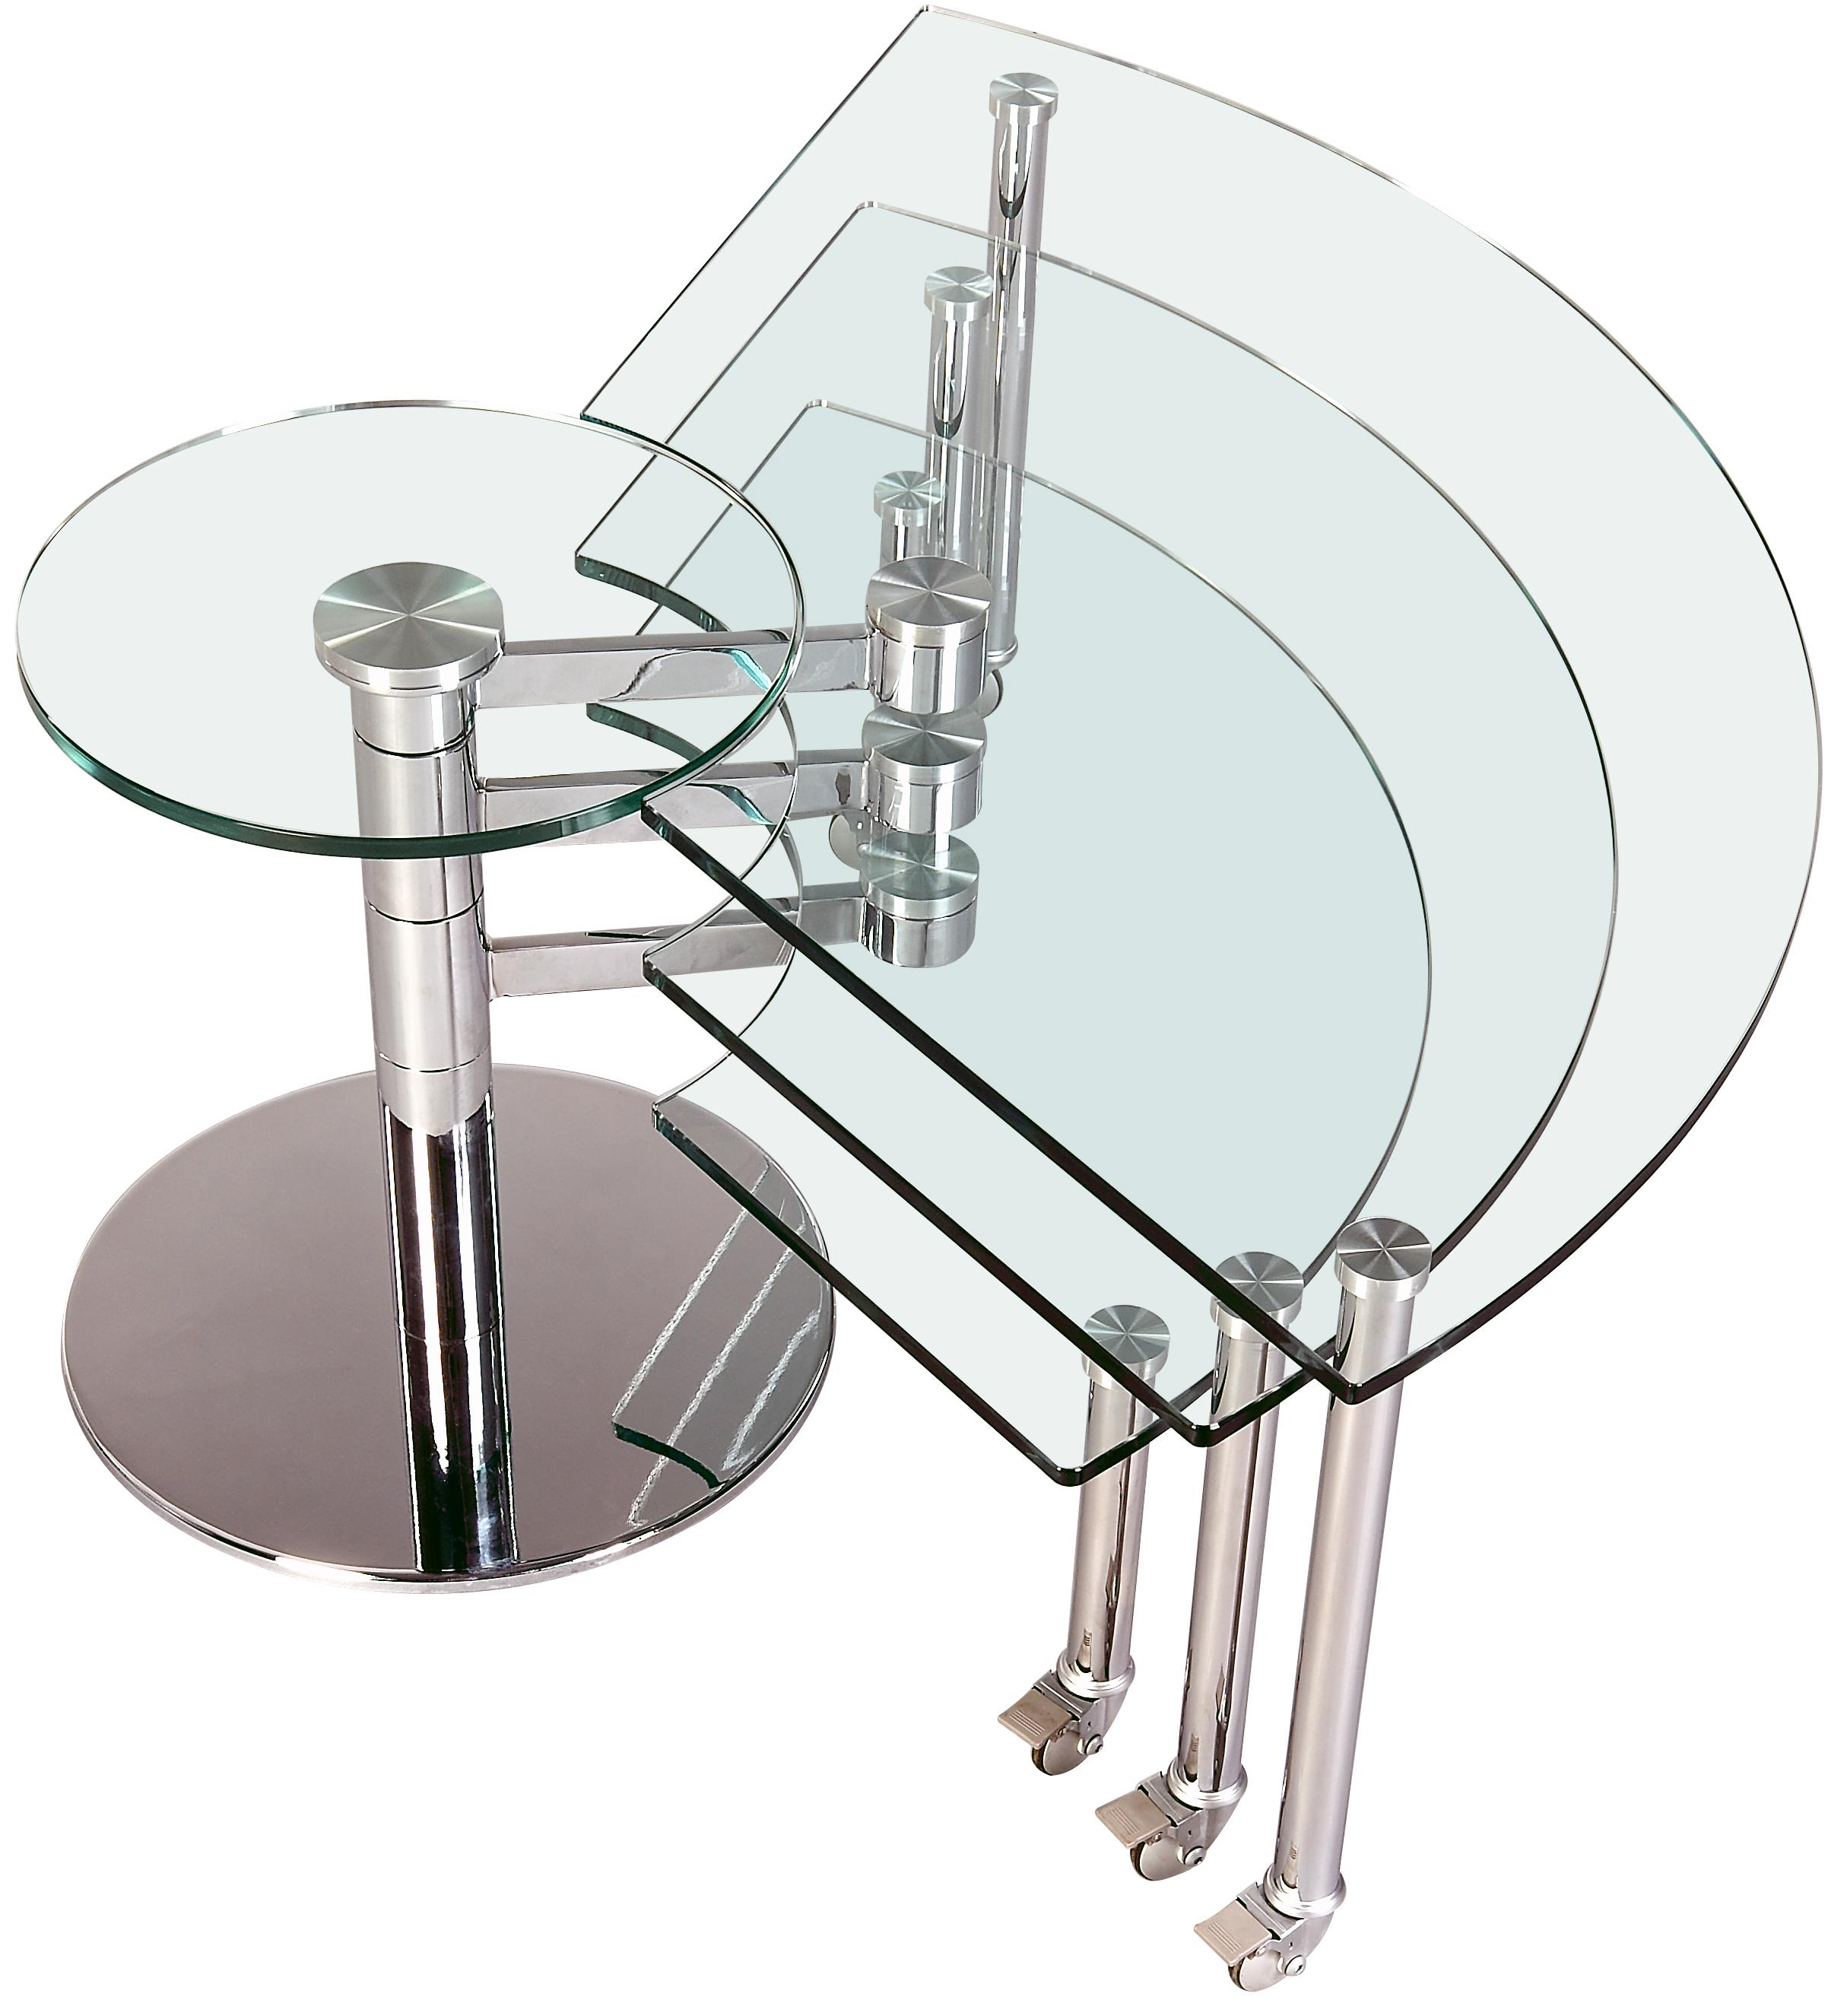 8160 Three Level Motion Cocktail Table by Chintaly Imports at Nassau Furniture and Mattress